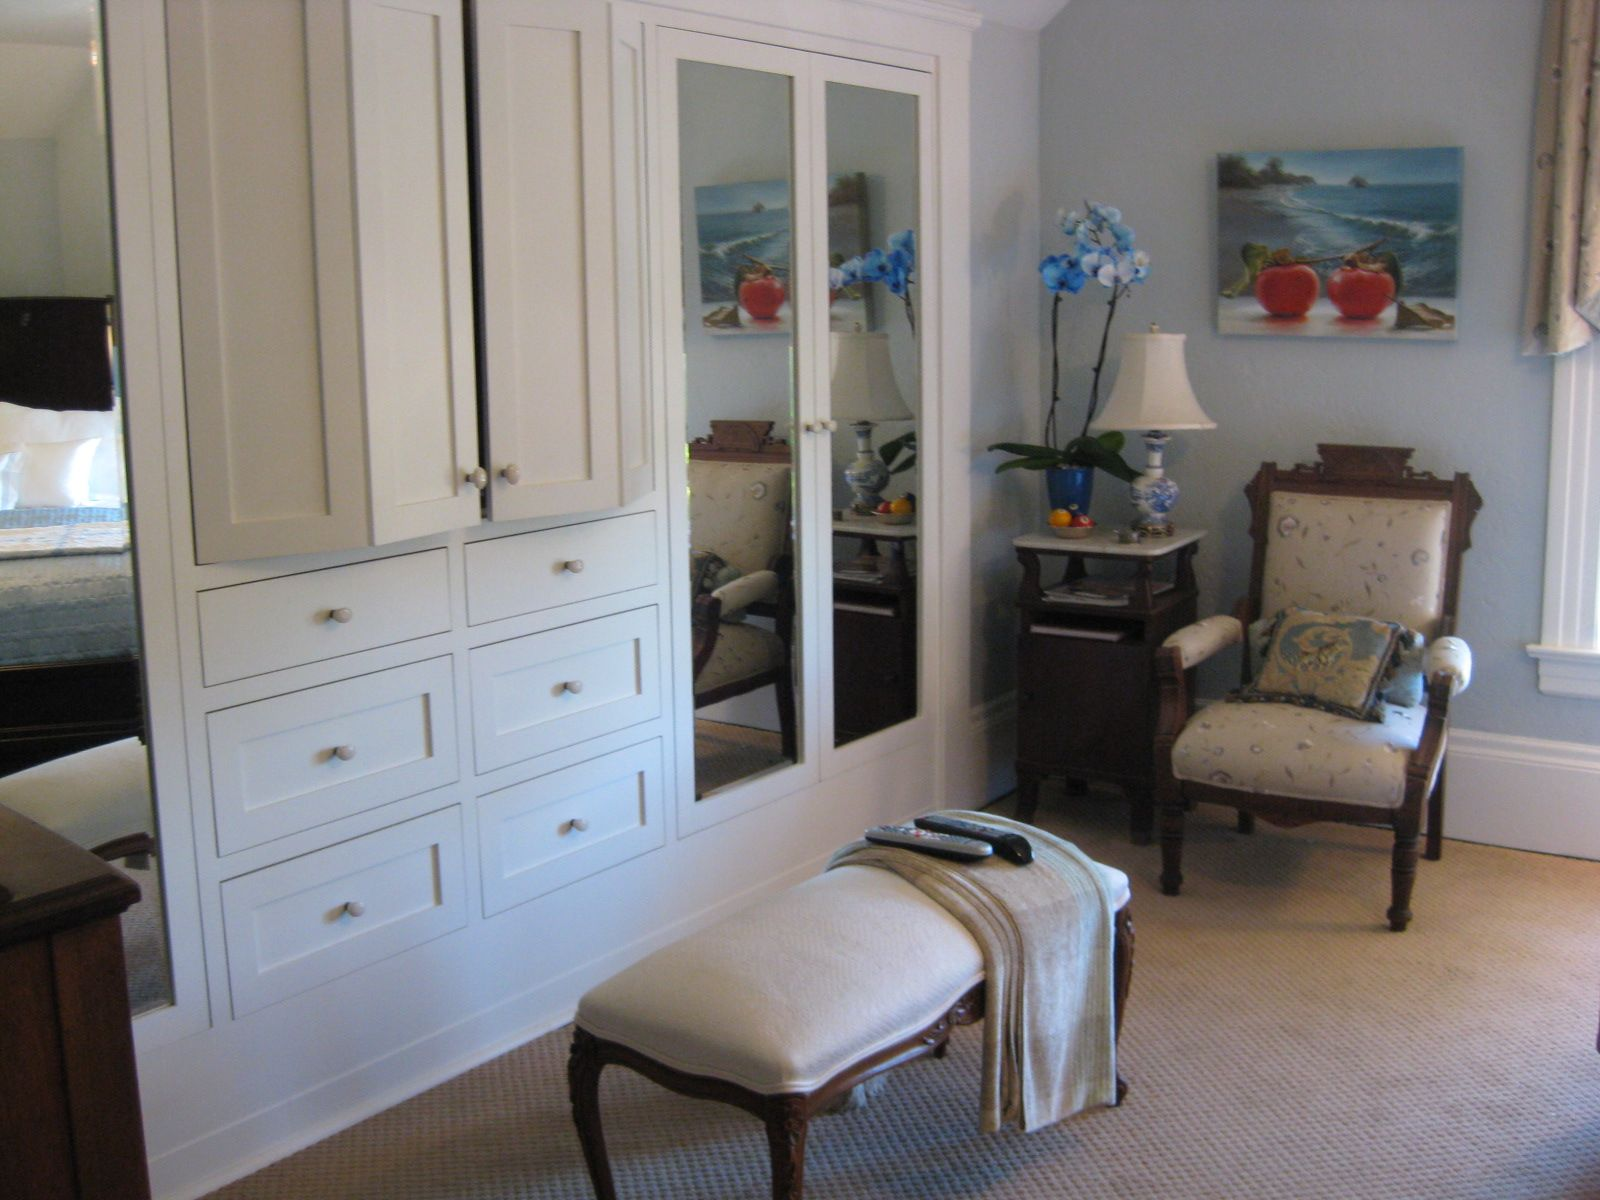 Bedroom with tv and closet - New Built In Closet Tv Hidden In Folding Doors Beveled Mirror Doors Antique